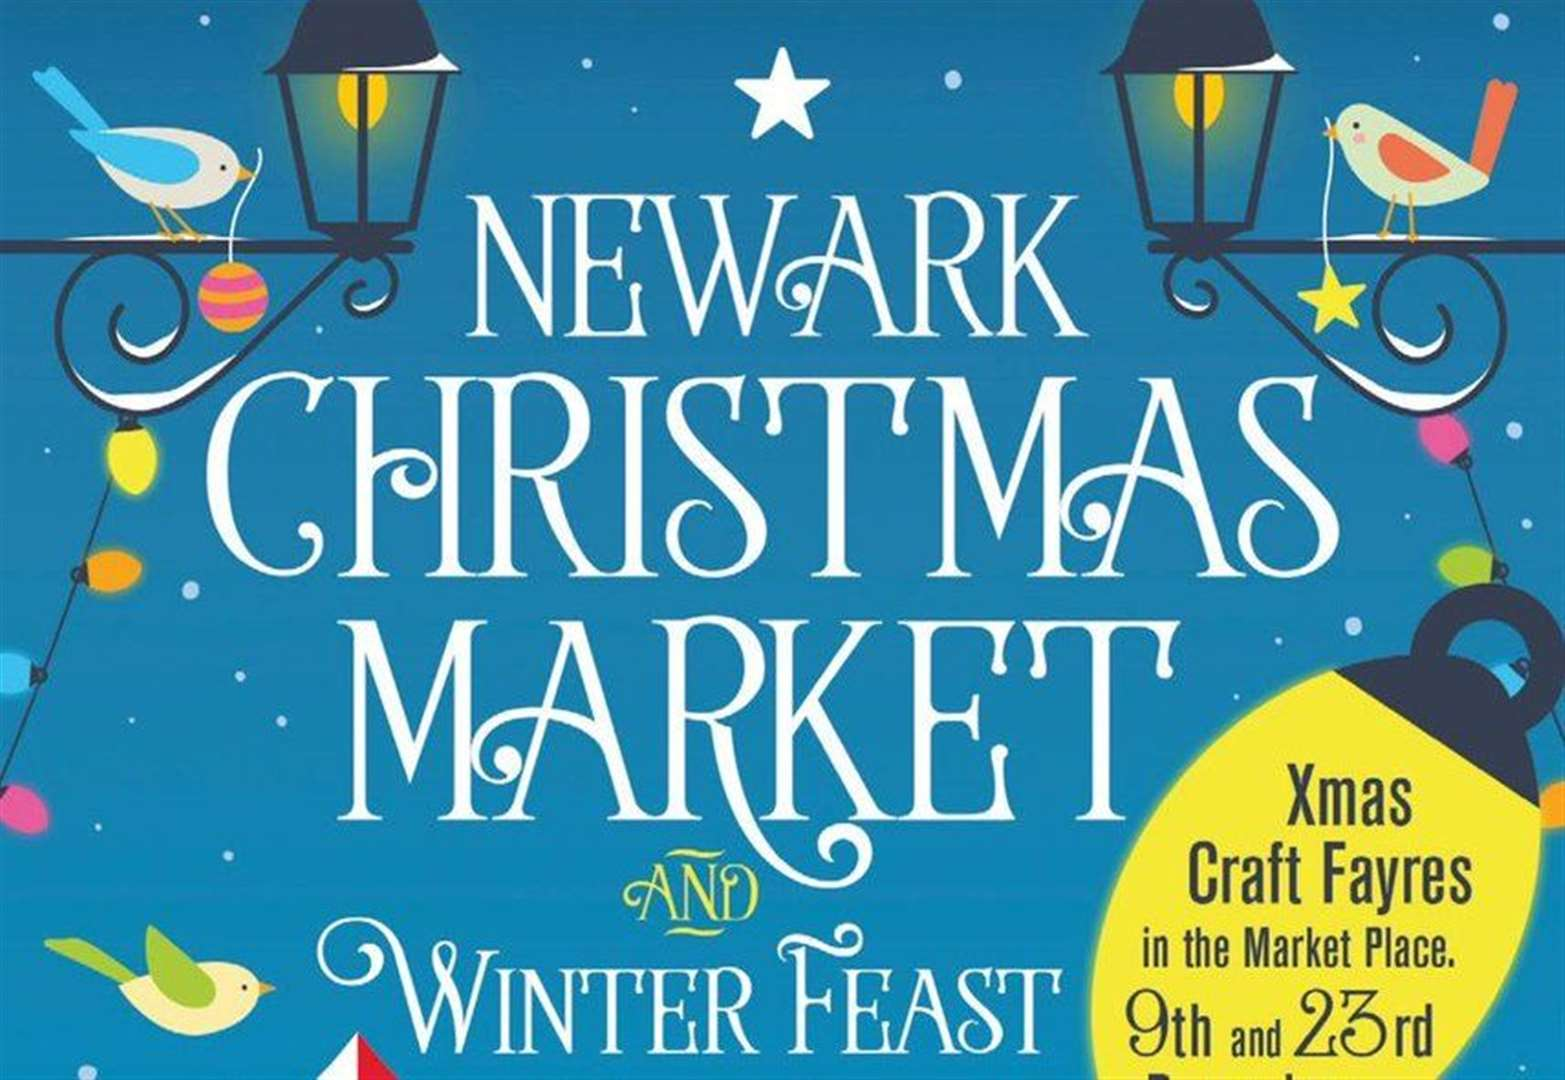 Lots to feast on at wintry Christmas market this weekend